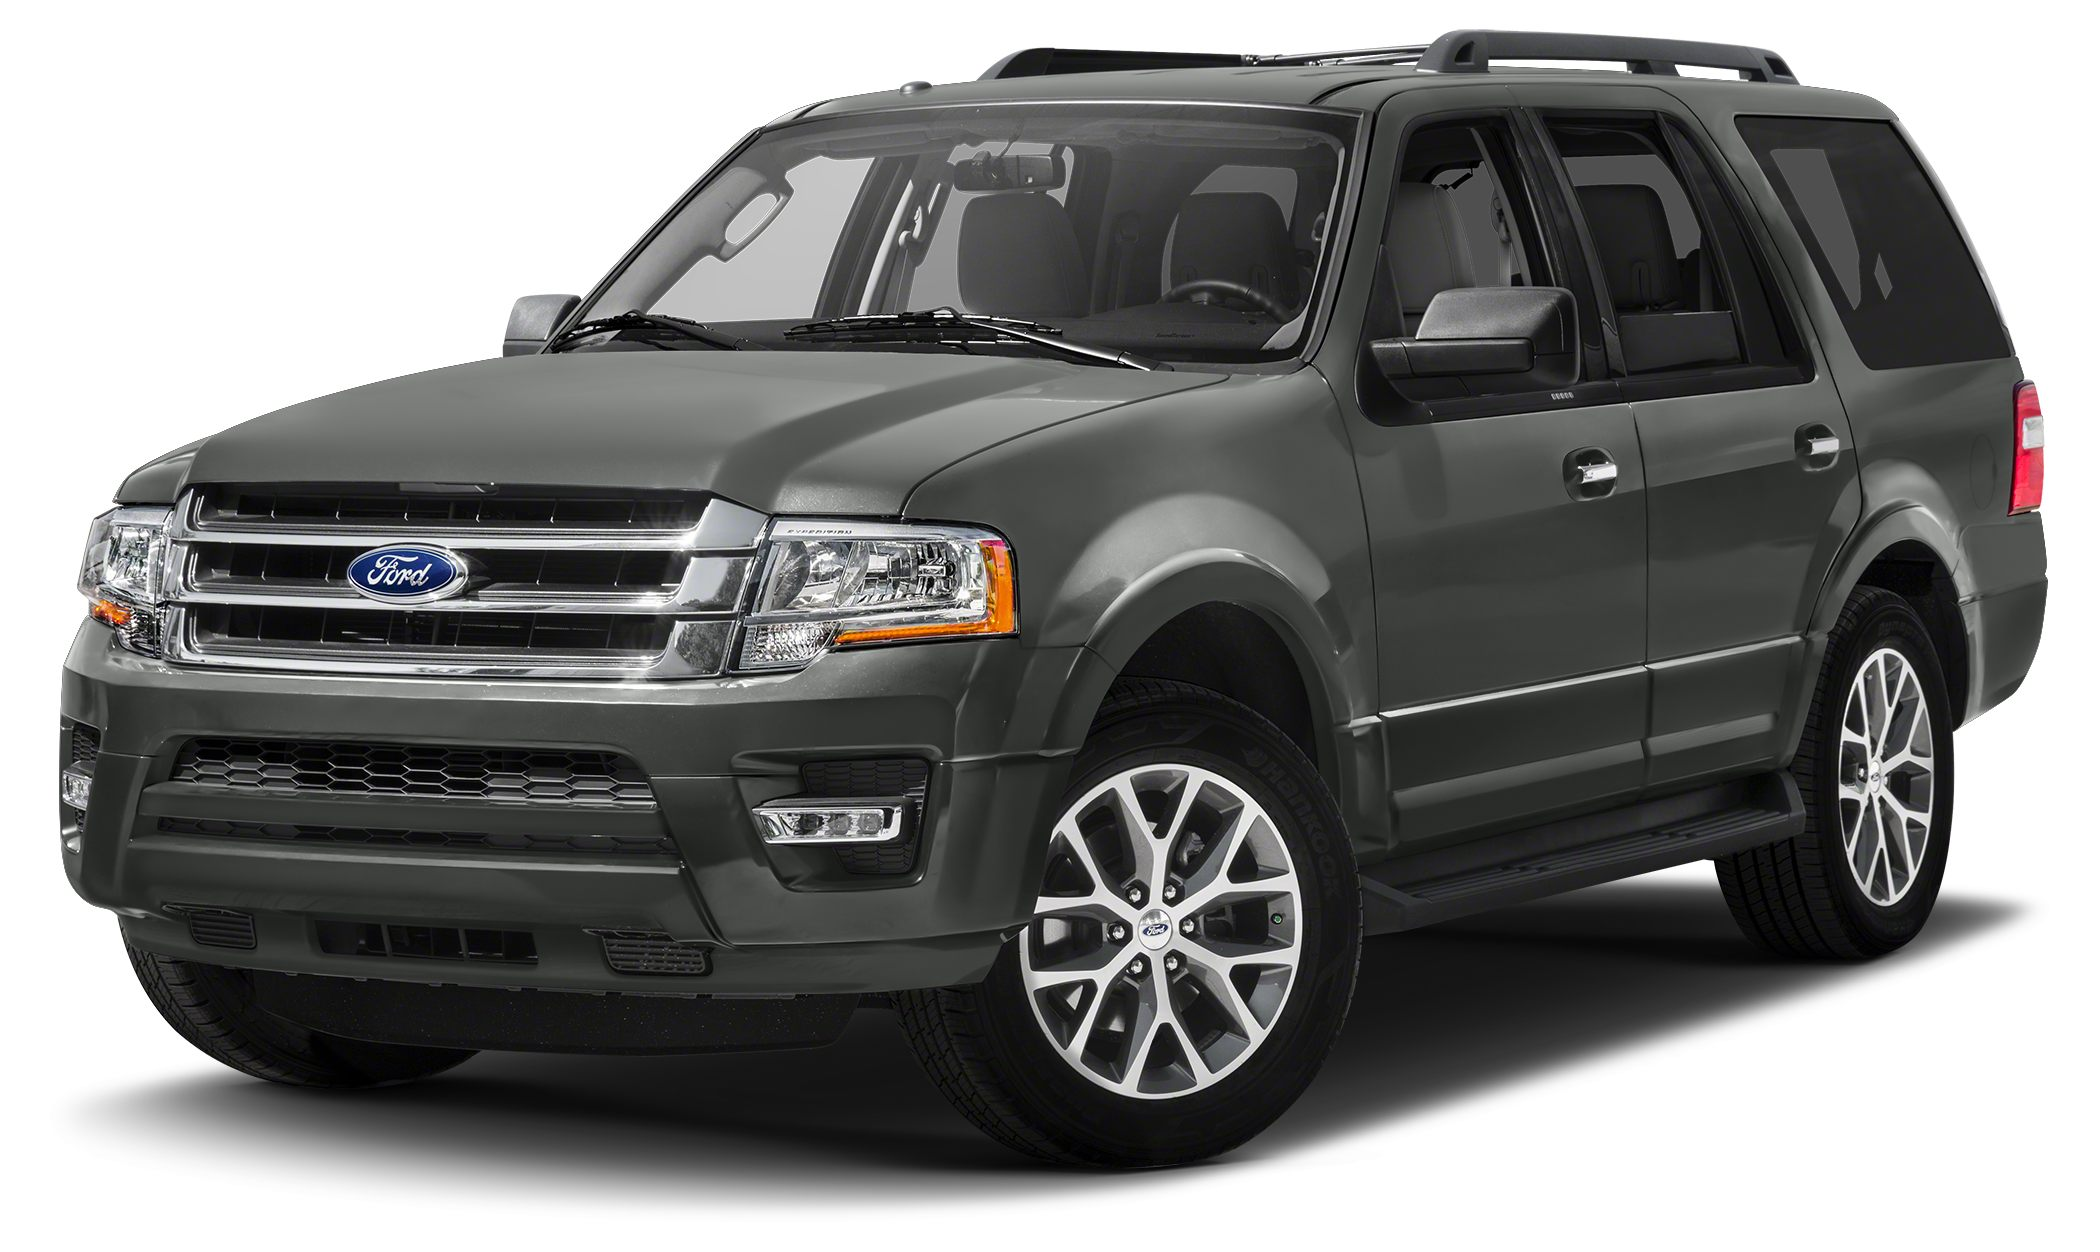 2016 Ford Expedition XLT The 2016 Ford Expedition features a new aggressive front end creates a bo